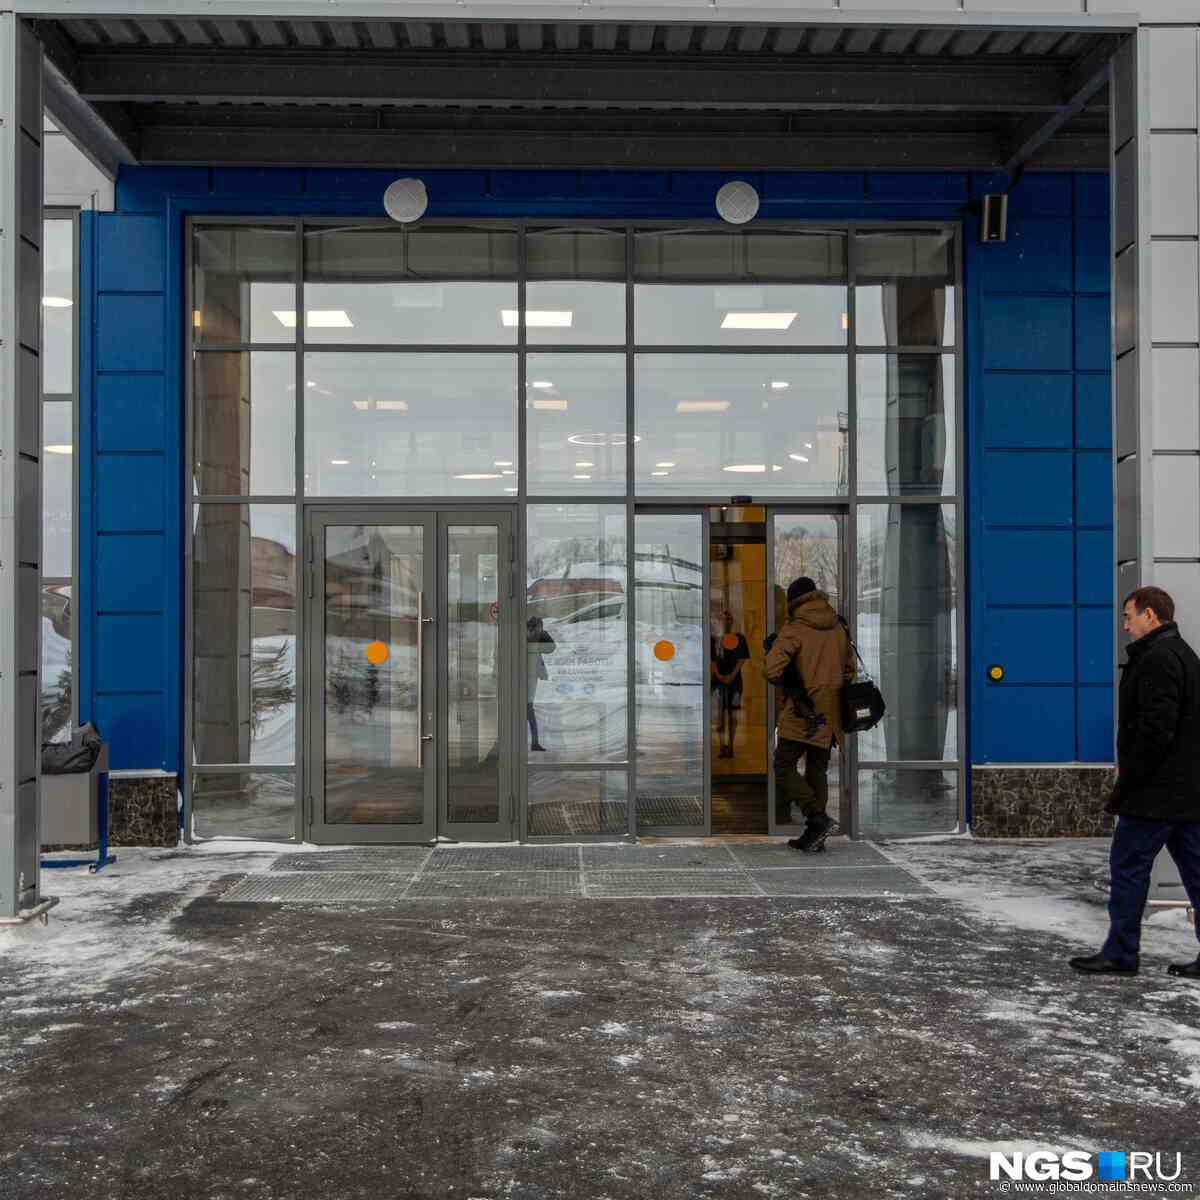 Bus rates from Novosibirsk to Kemerovo has risen sharply — return flights no - The Global Domains News